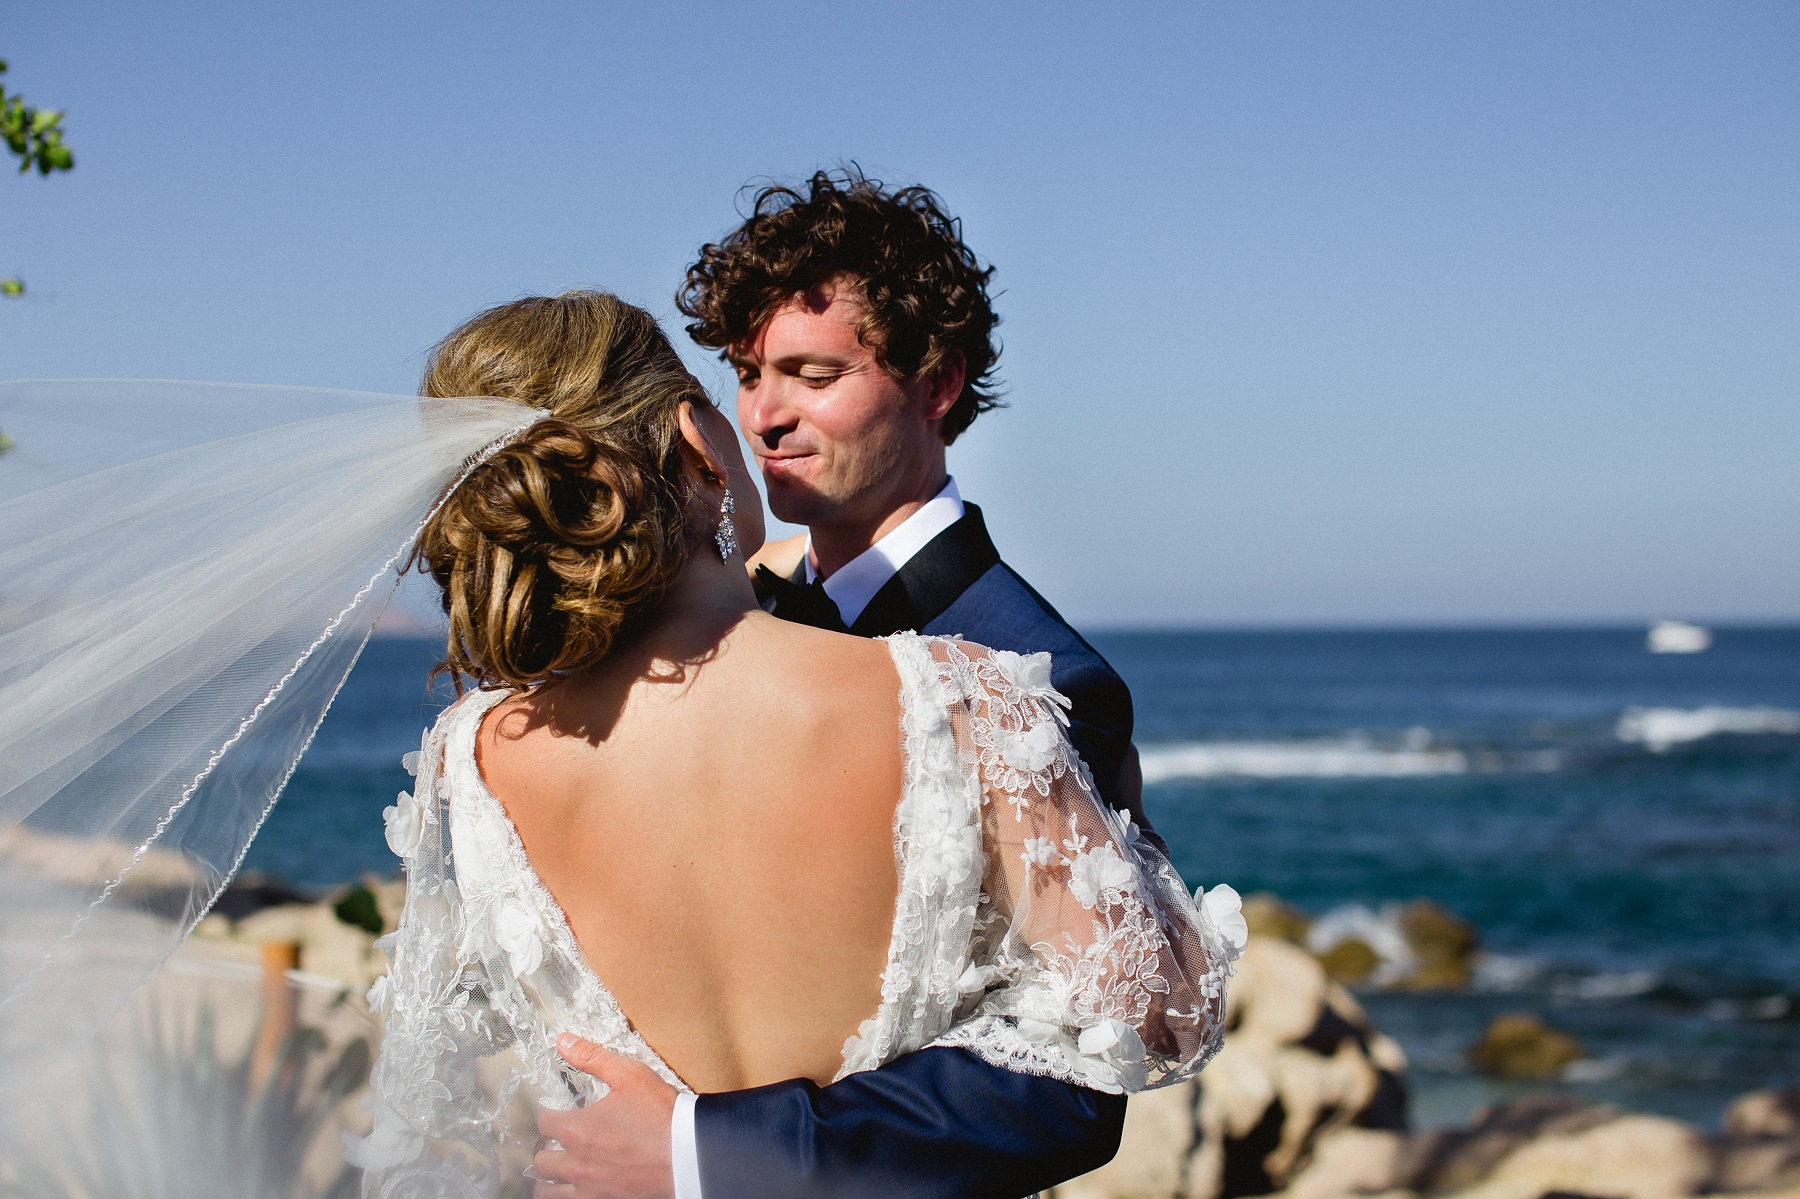 first look wedding photos chileno bay wedding elena damy cabo destination wedding planners